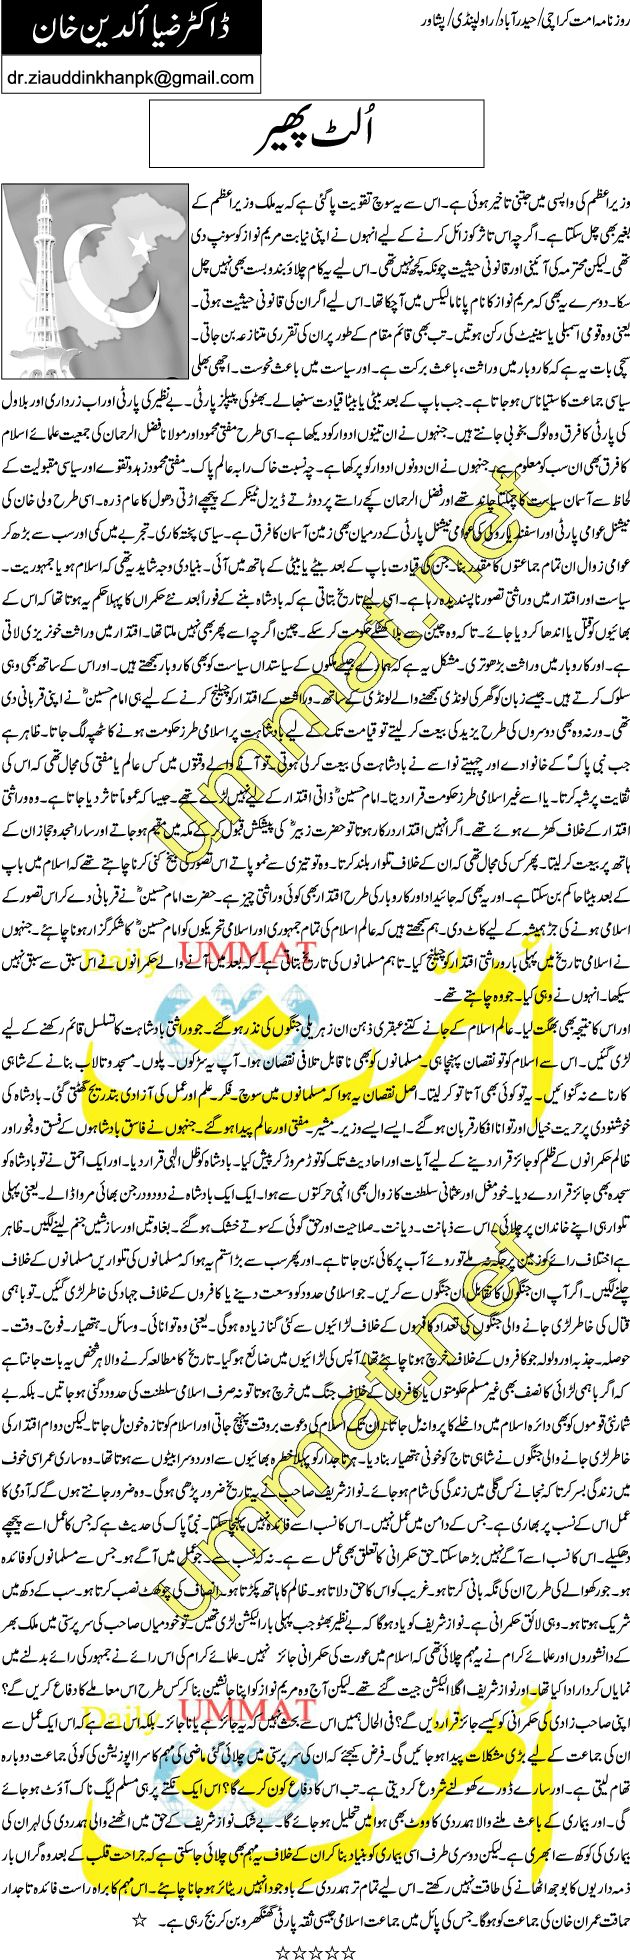 Daily Publications | Daily Ummat Karachi provides latest news in urdu language.